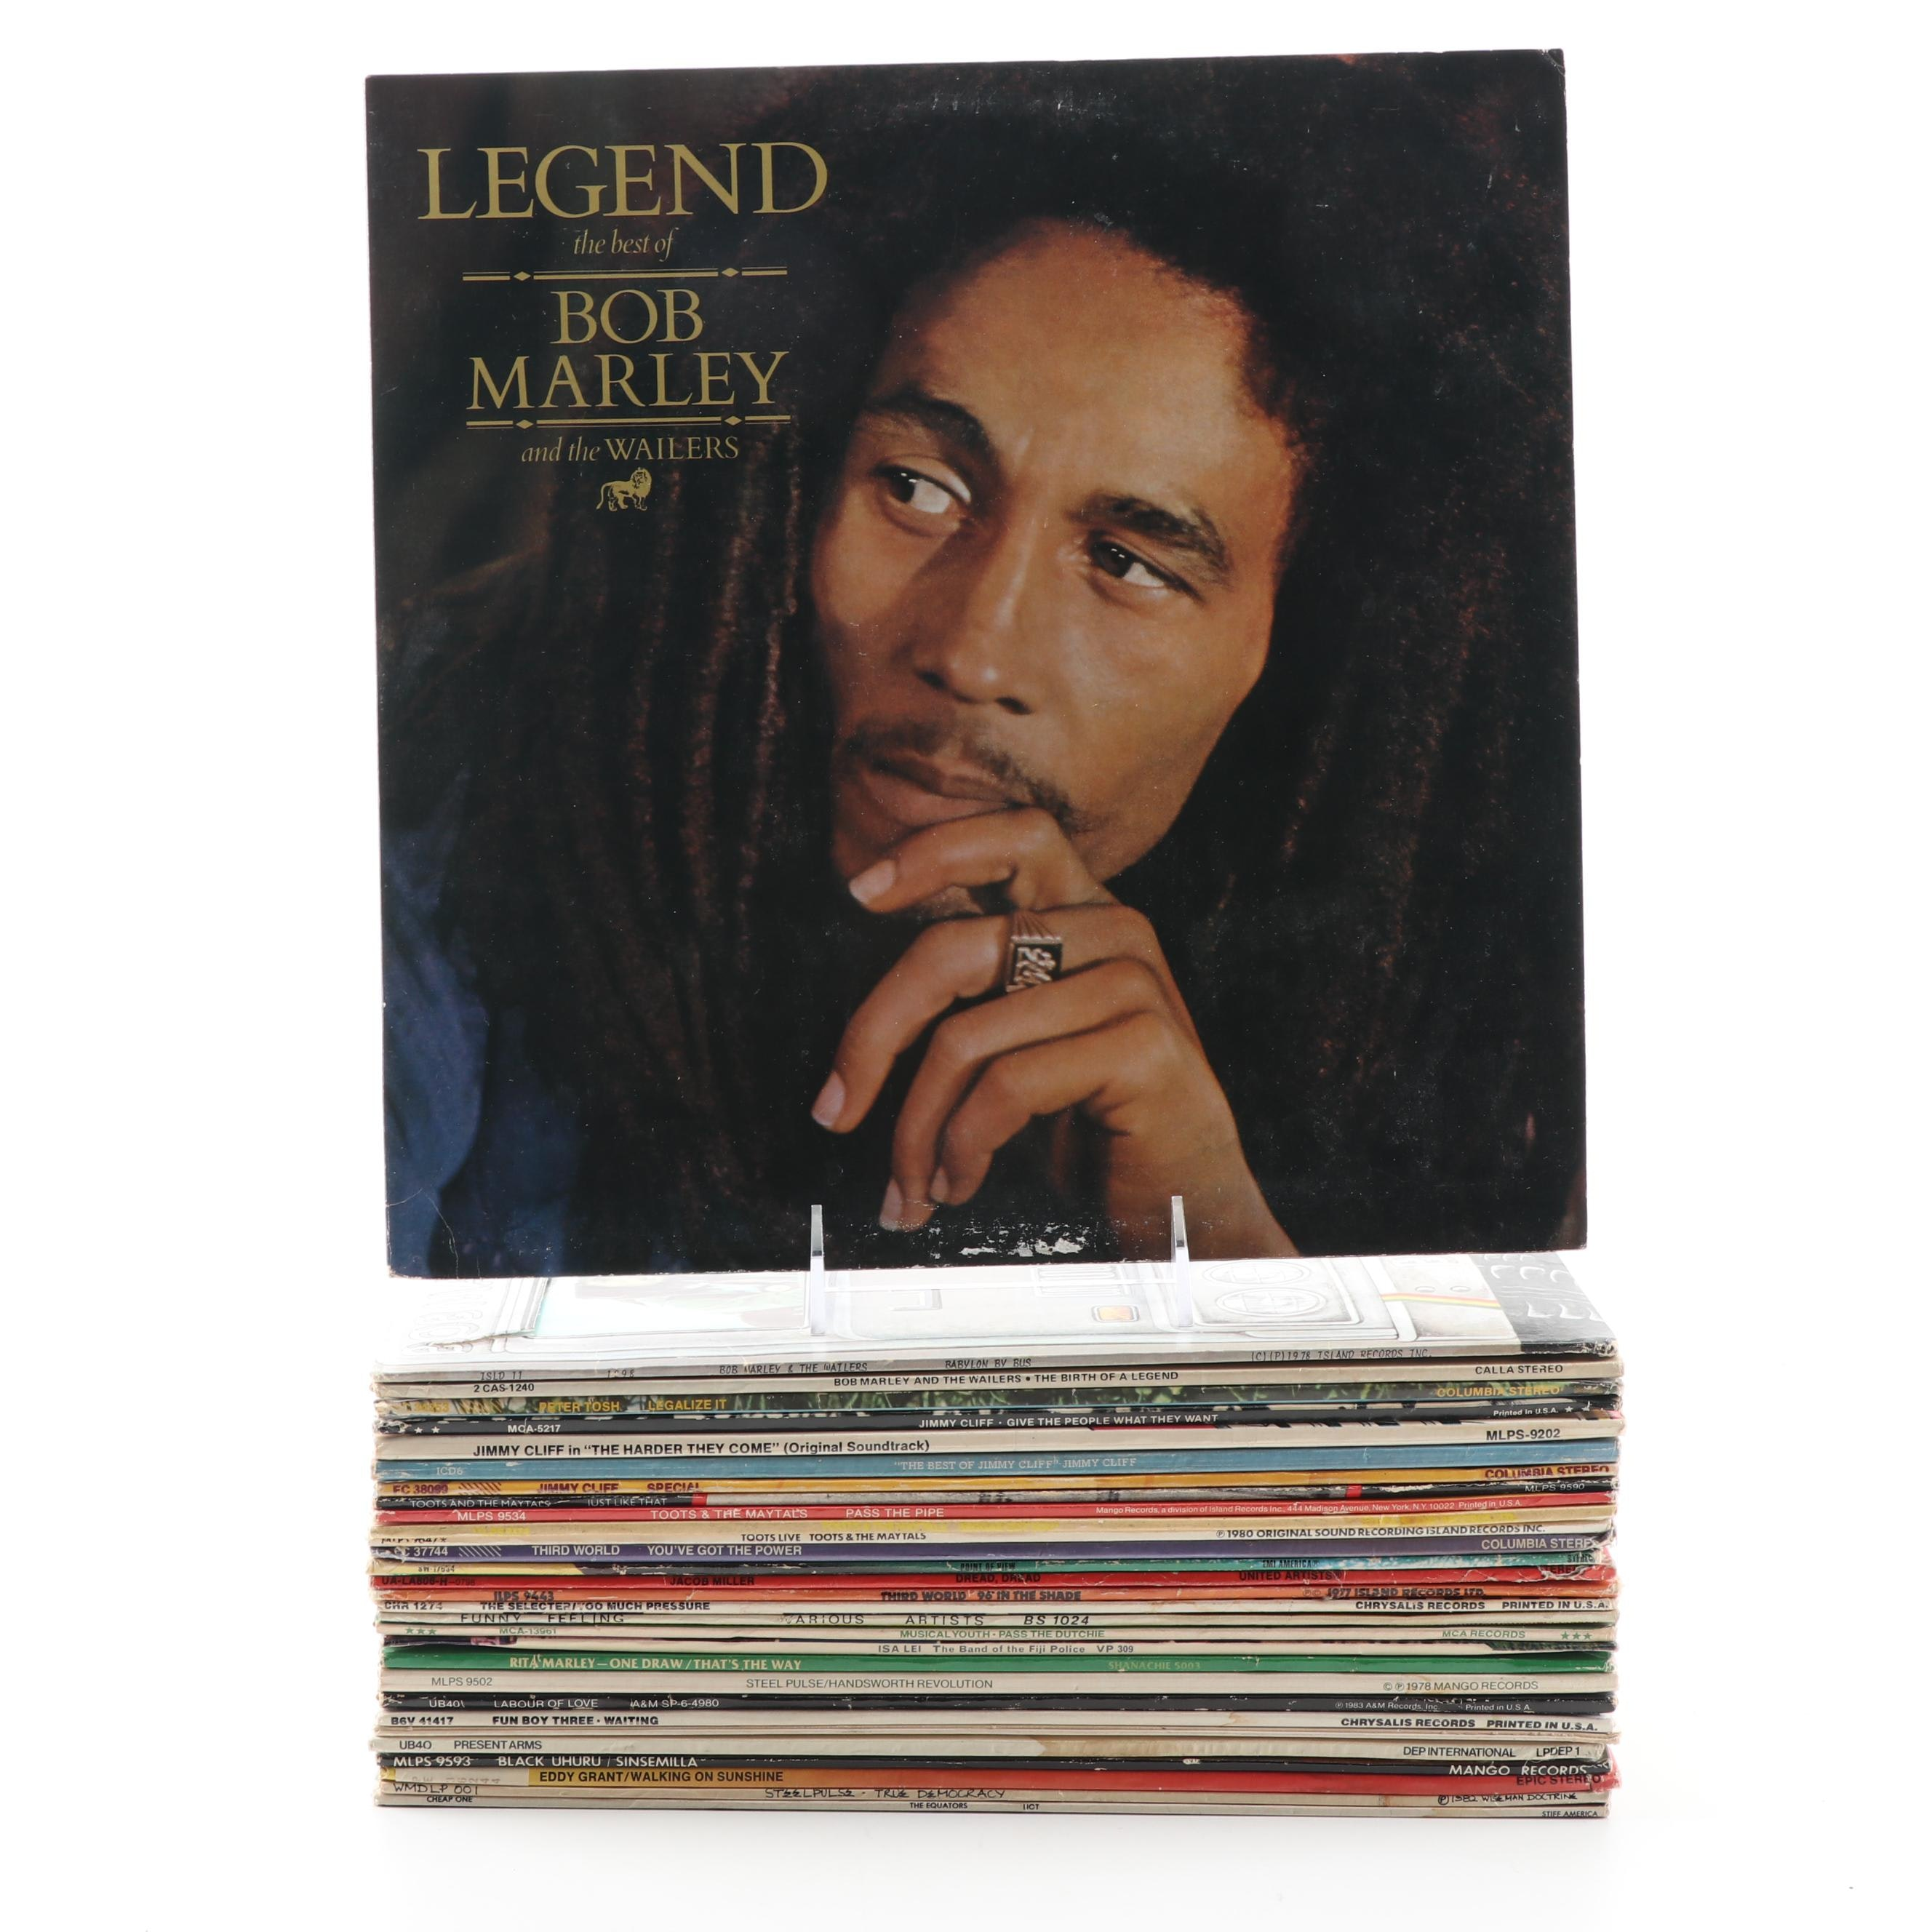 Reggae Records featuring Bob Marley, Jimmy Cliff, Toots & the Mayals, Peter Tosh